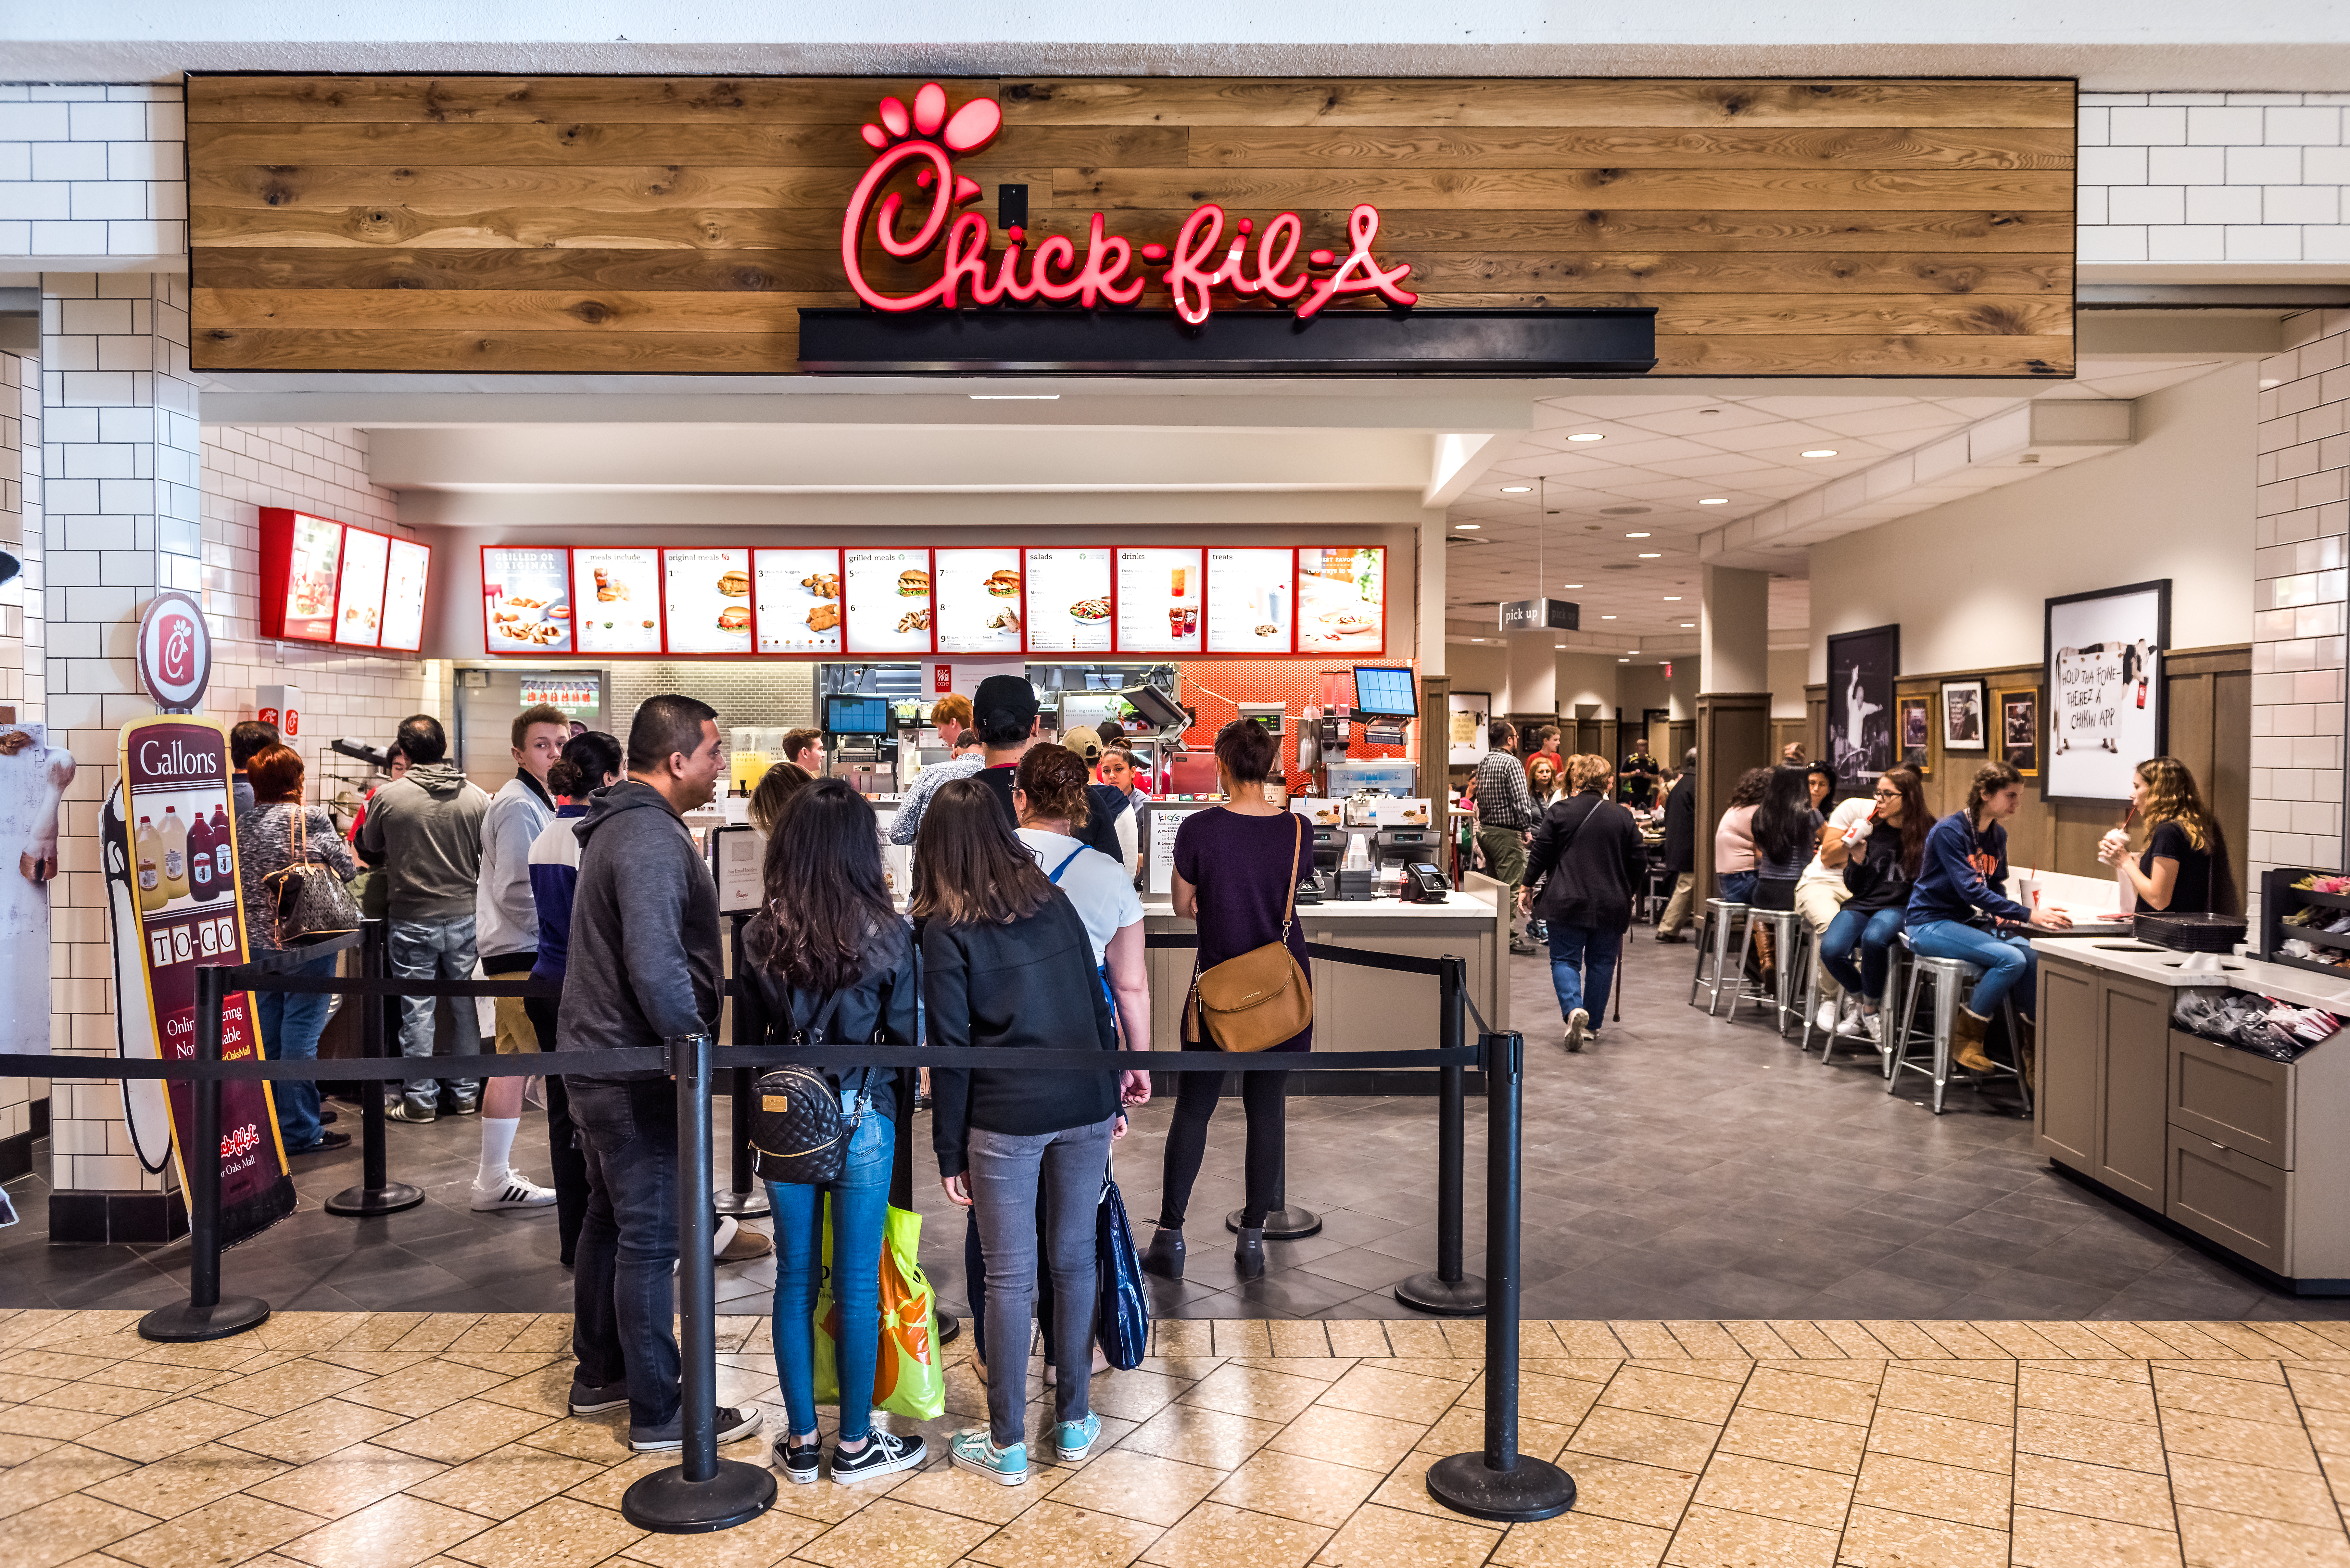 Banish 'Bastion Of Bigotry' Chick-Fil-A To The Basement, Says KU Faculty Members